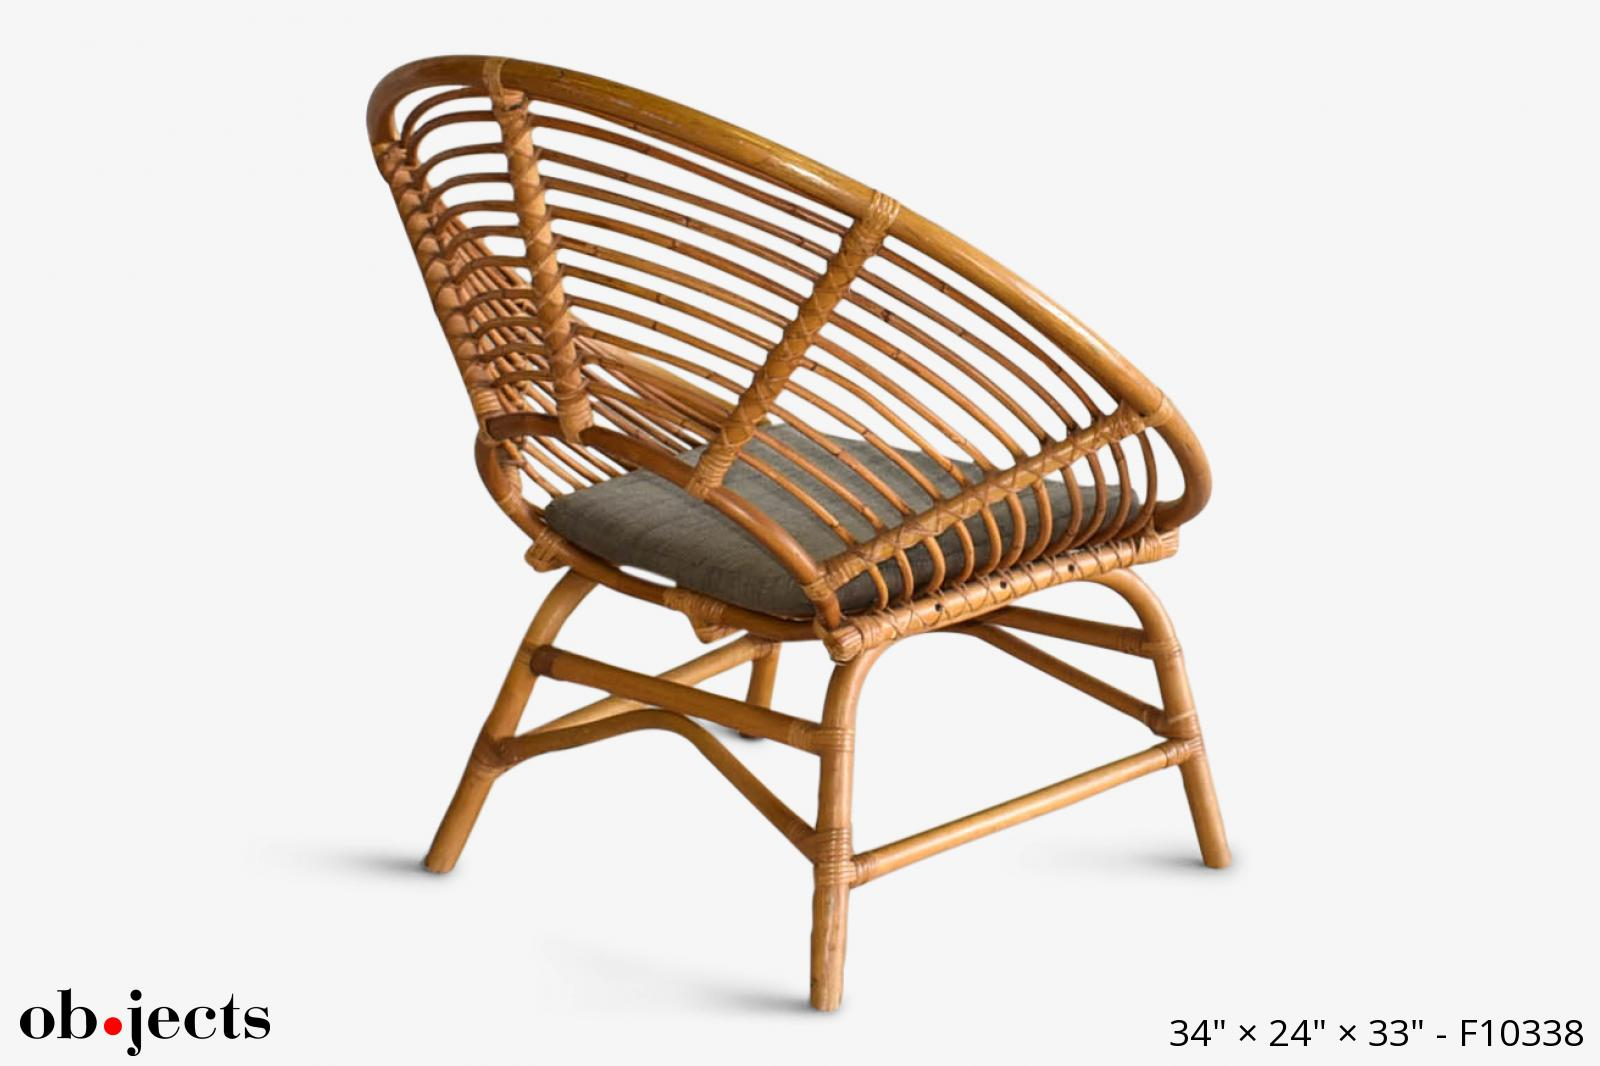 Chair 34in Round Bamboo Ob Jects